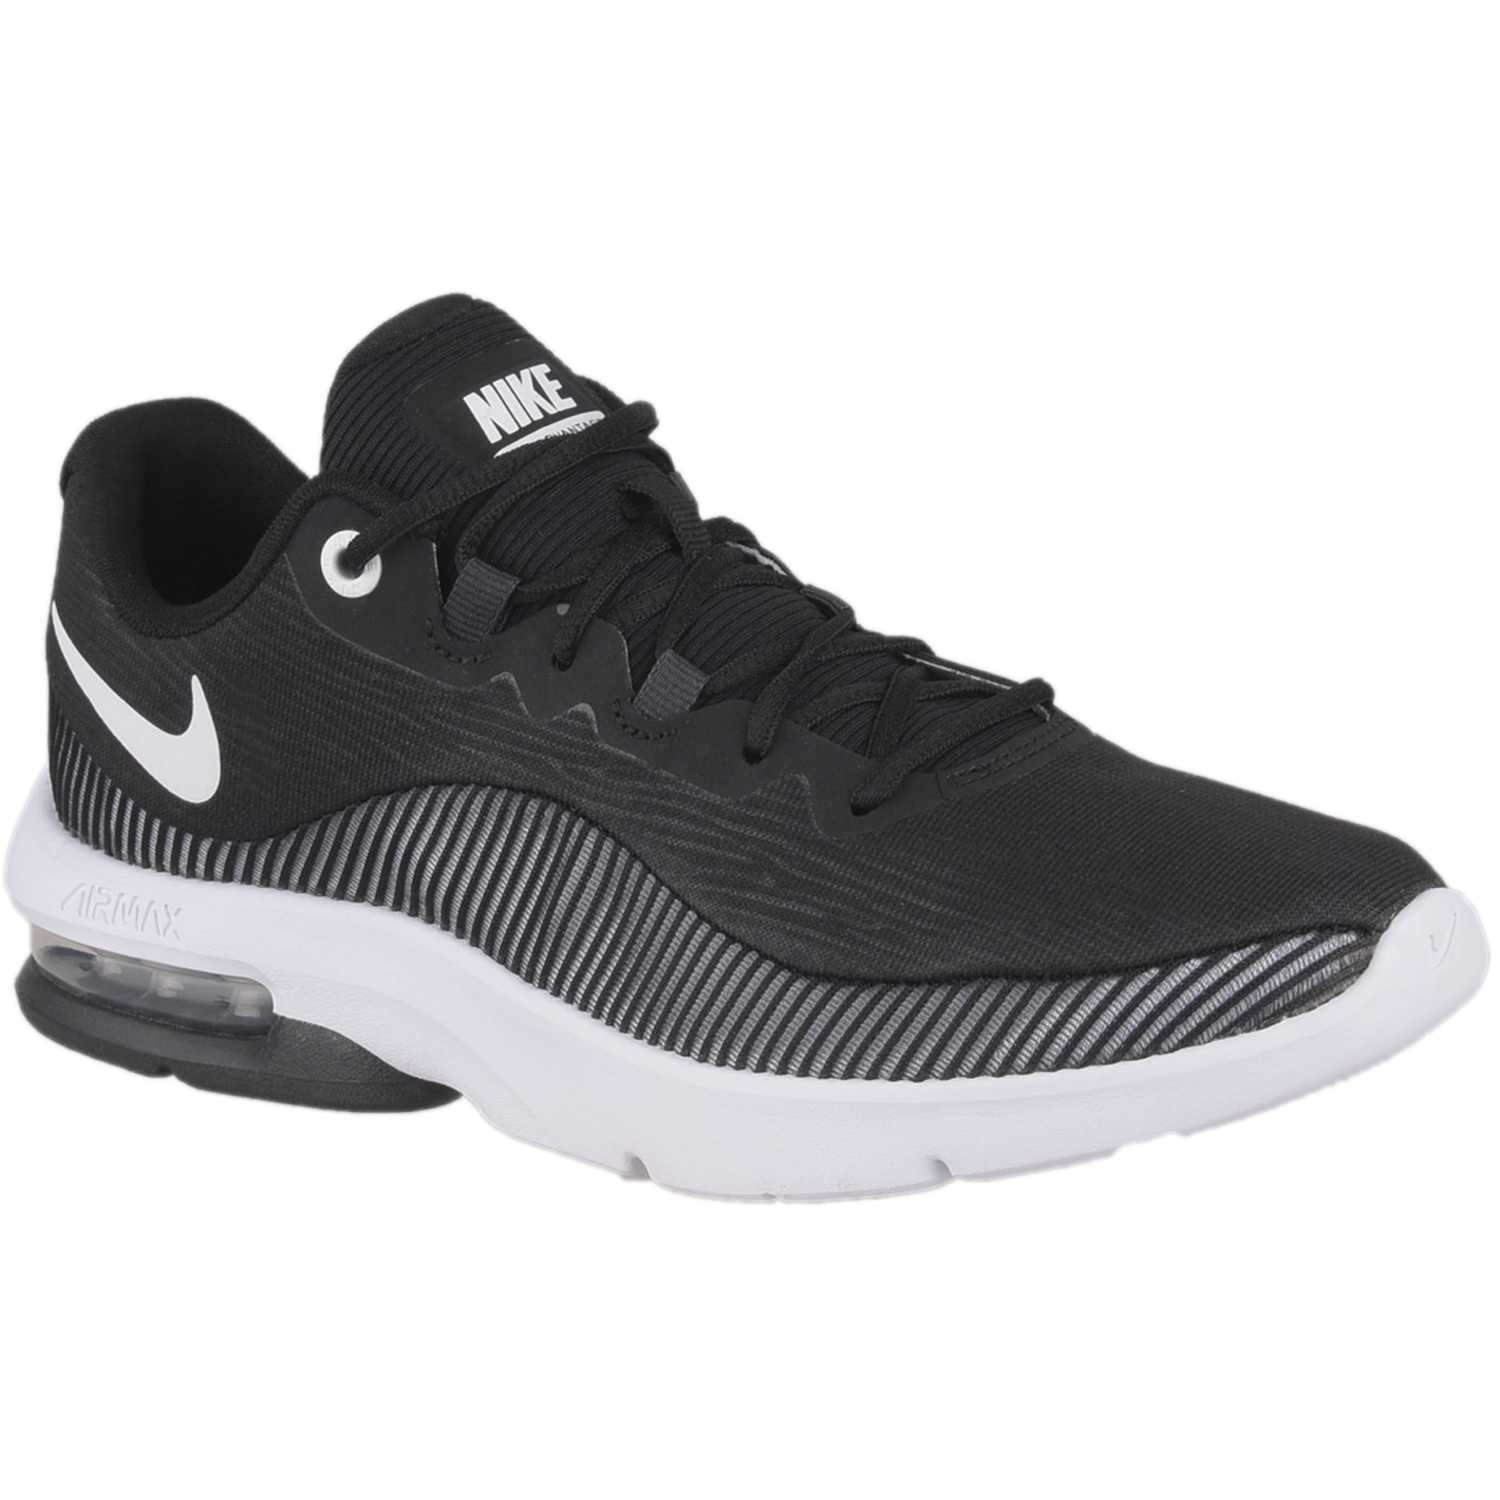 best service 5cd83 498de Zapatilla de Mujer Nike Negro   blanco wmns nike air max advantage 2